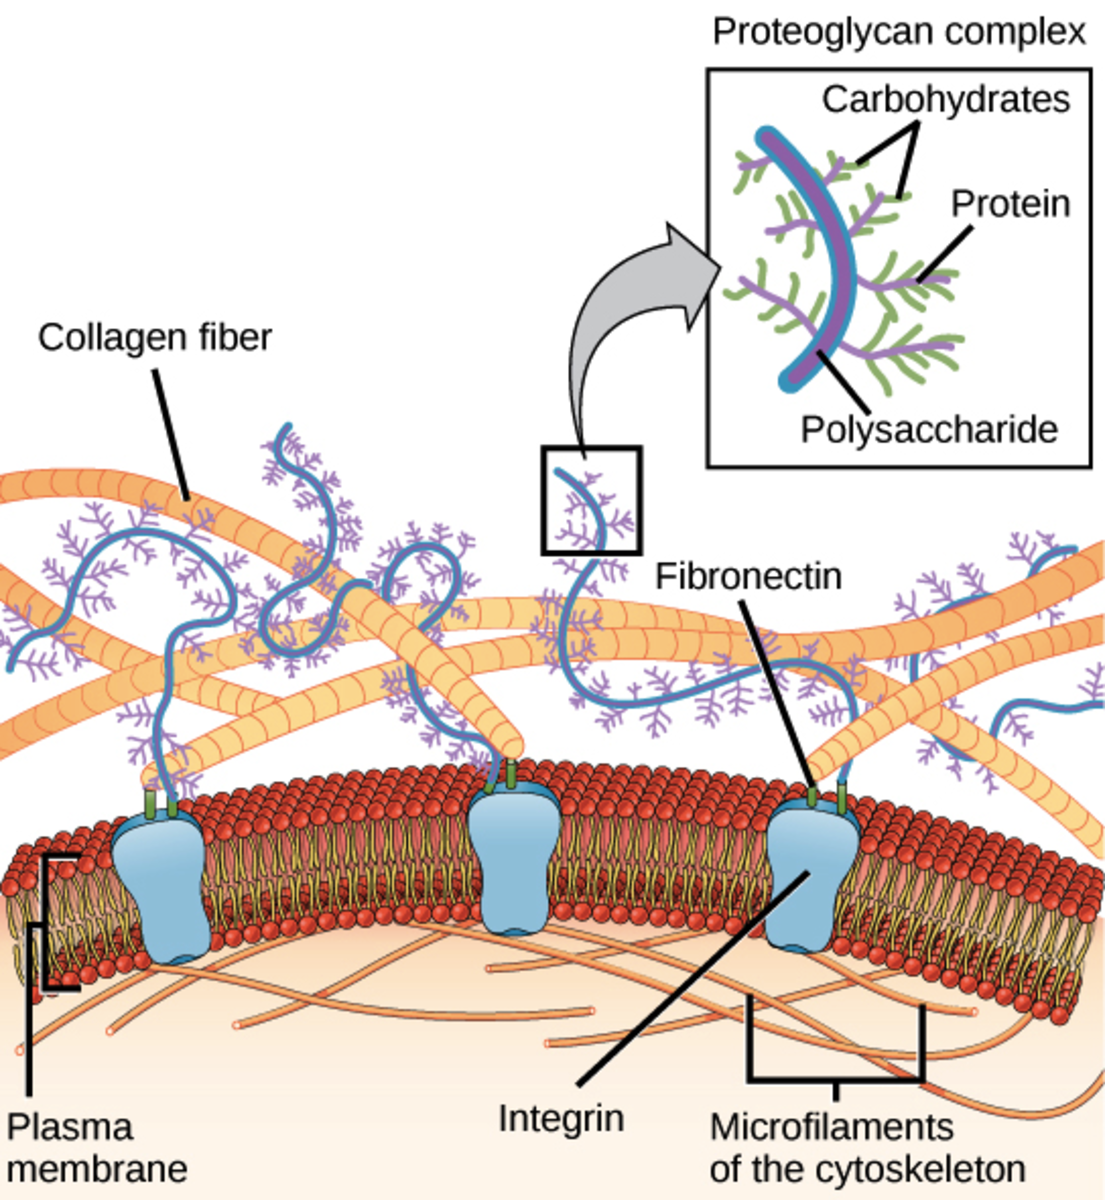 A representation of the cell or plasma membrane, fibronectin, and the extracellular matrix